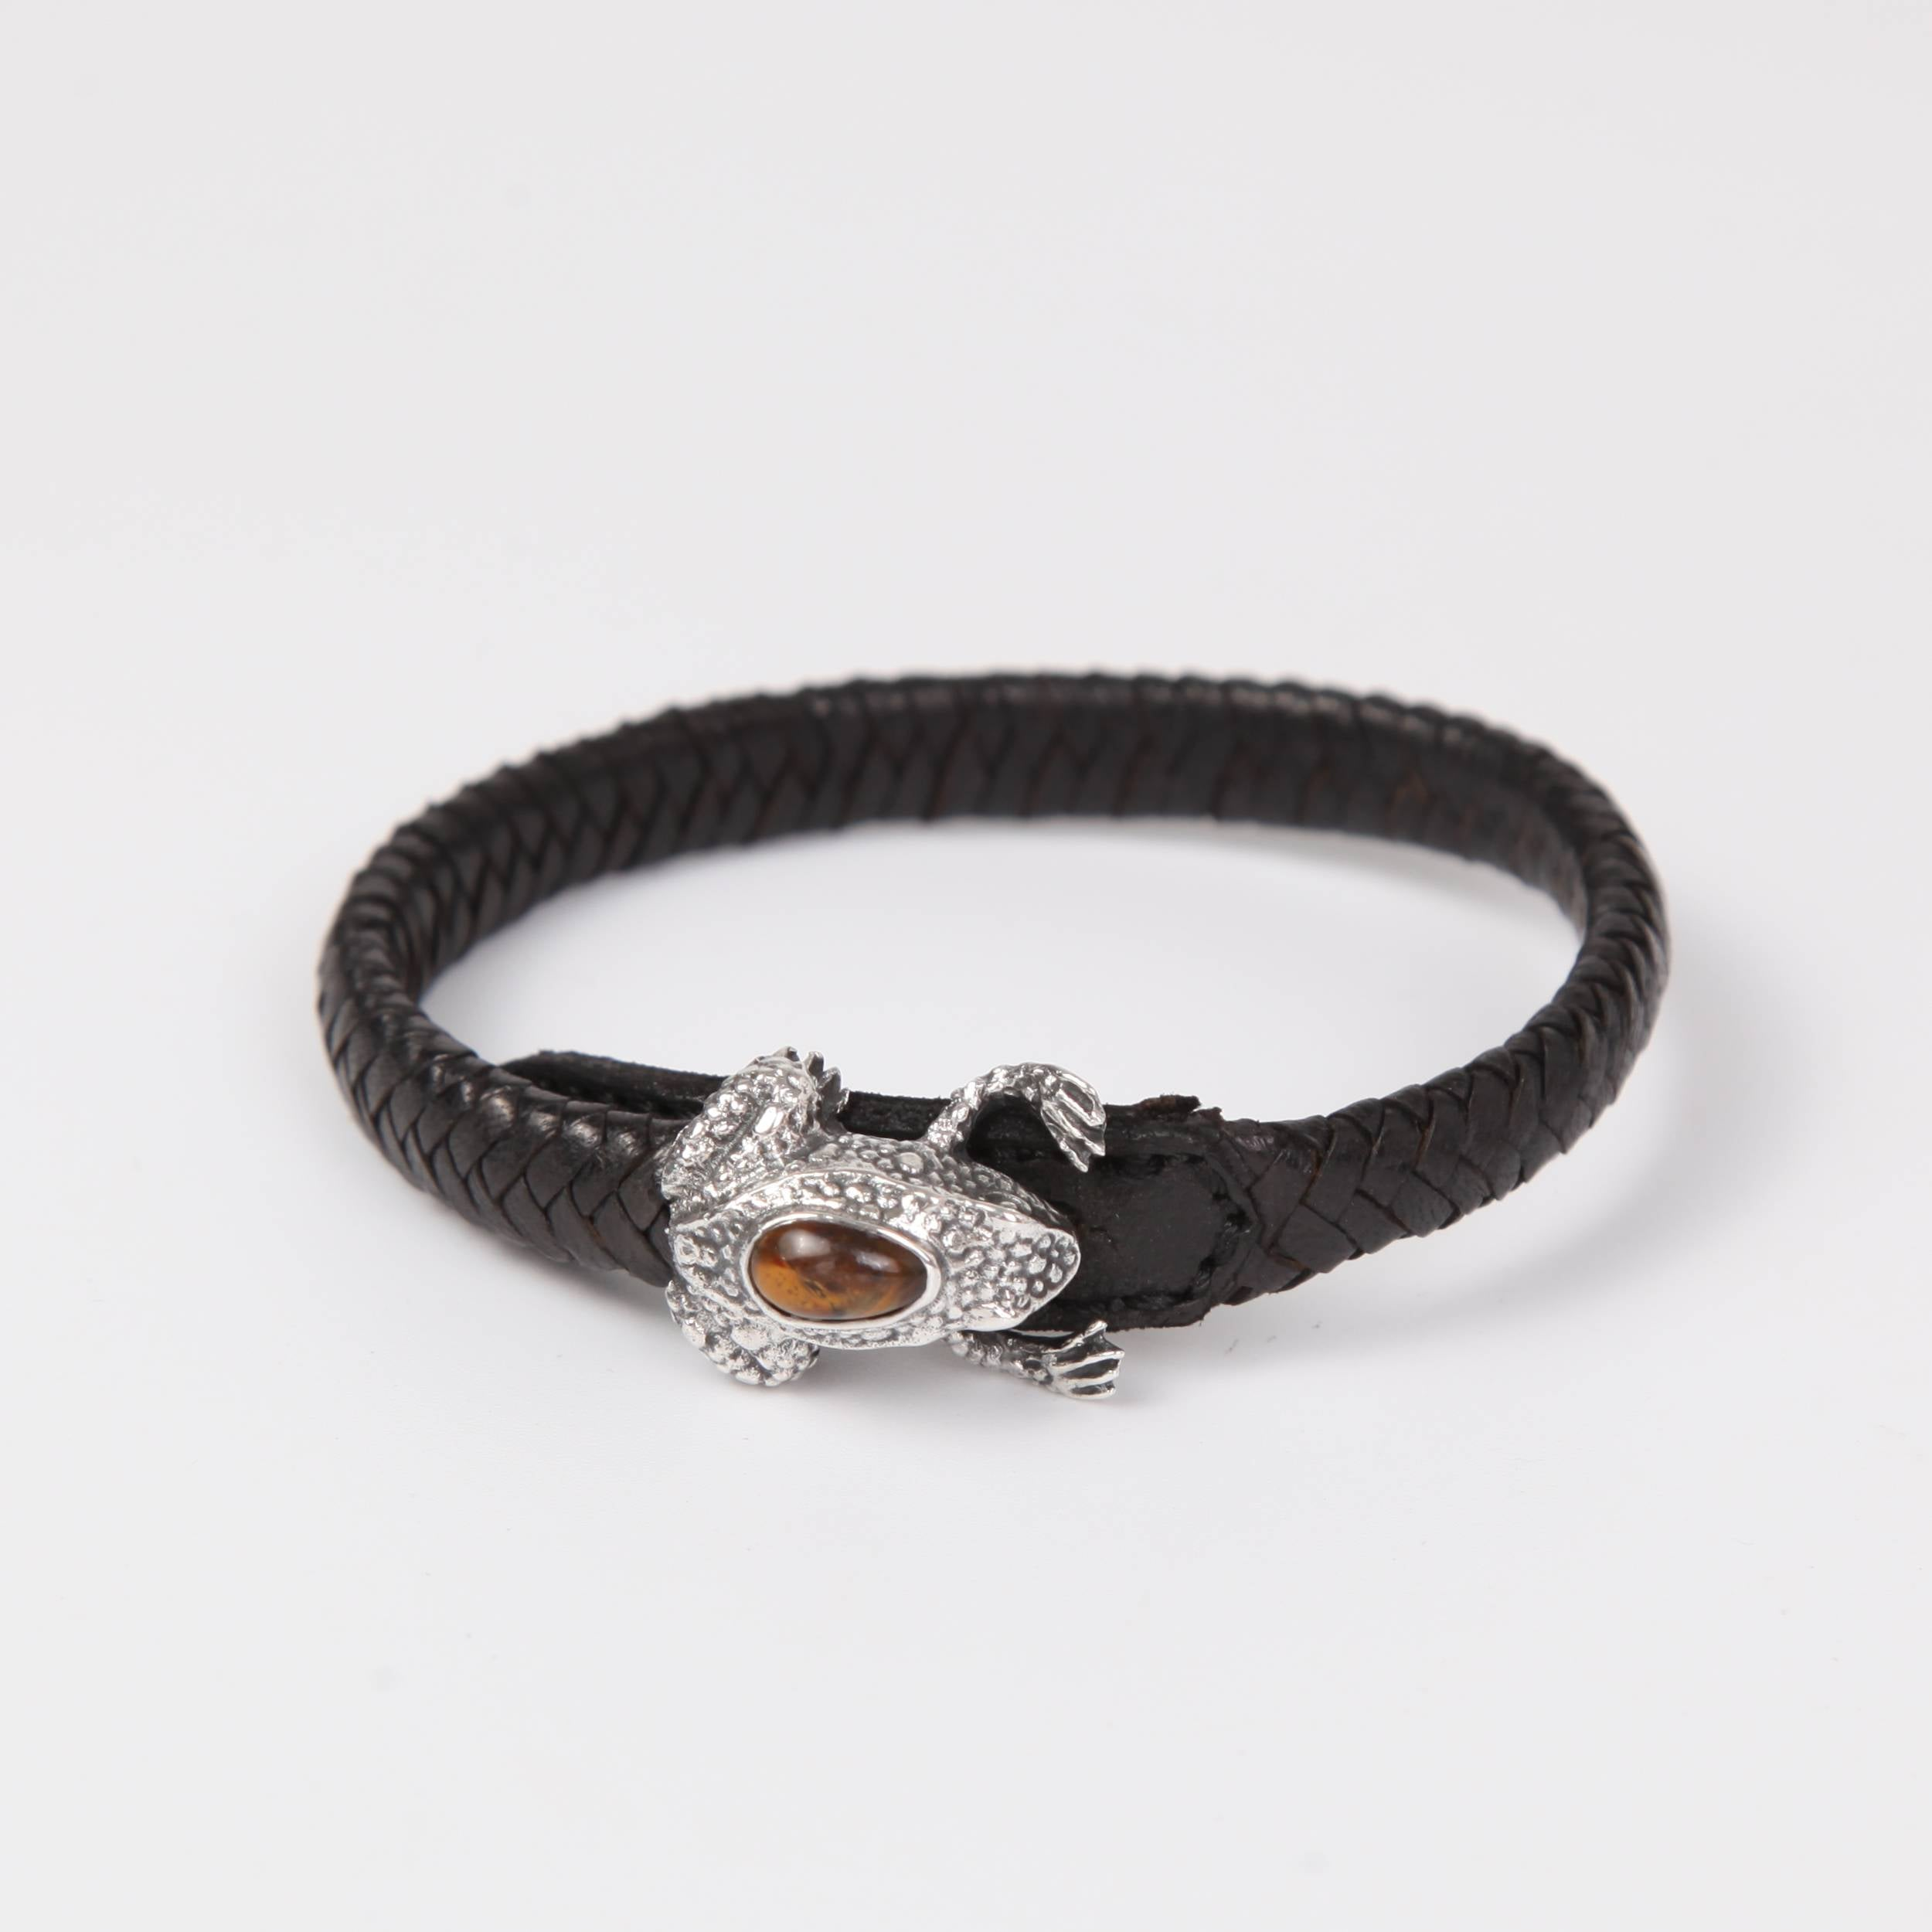 Leather (goat skin) Bracelet with Silver Frog and Pietersite